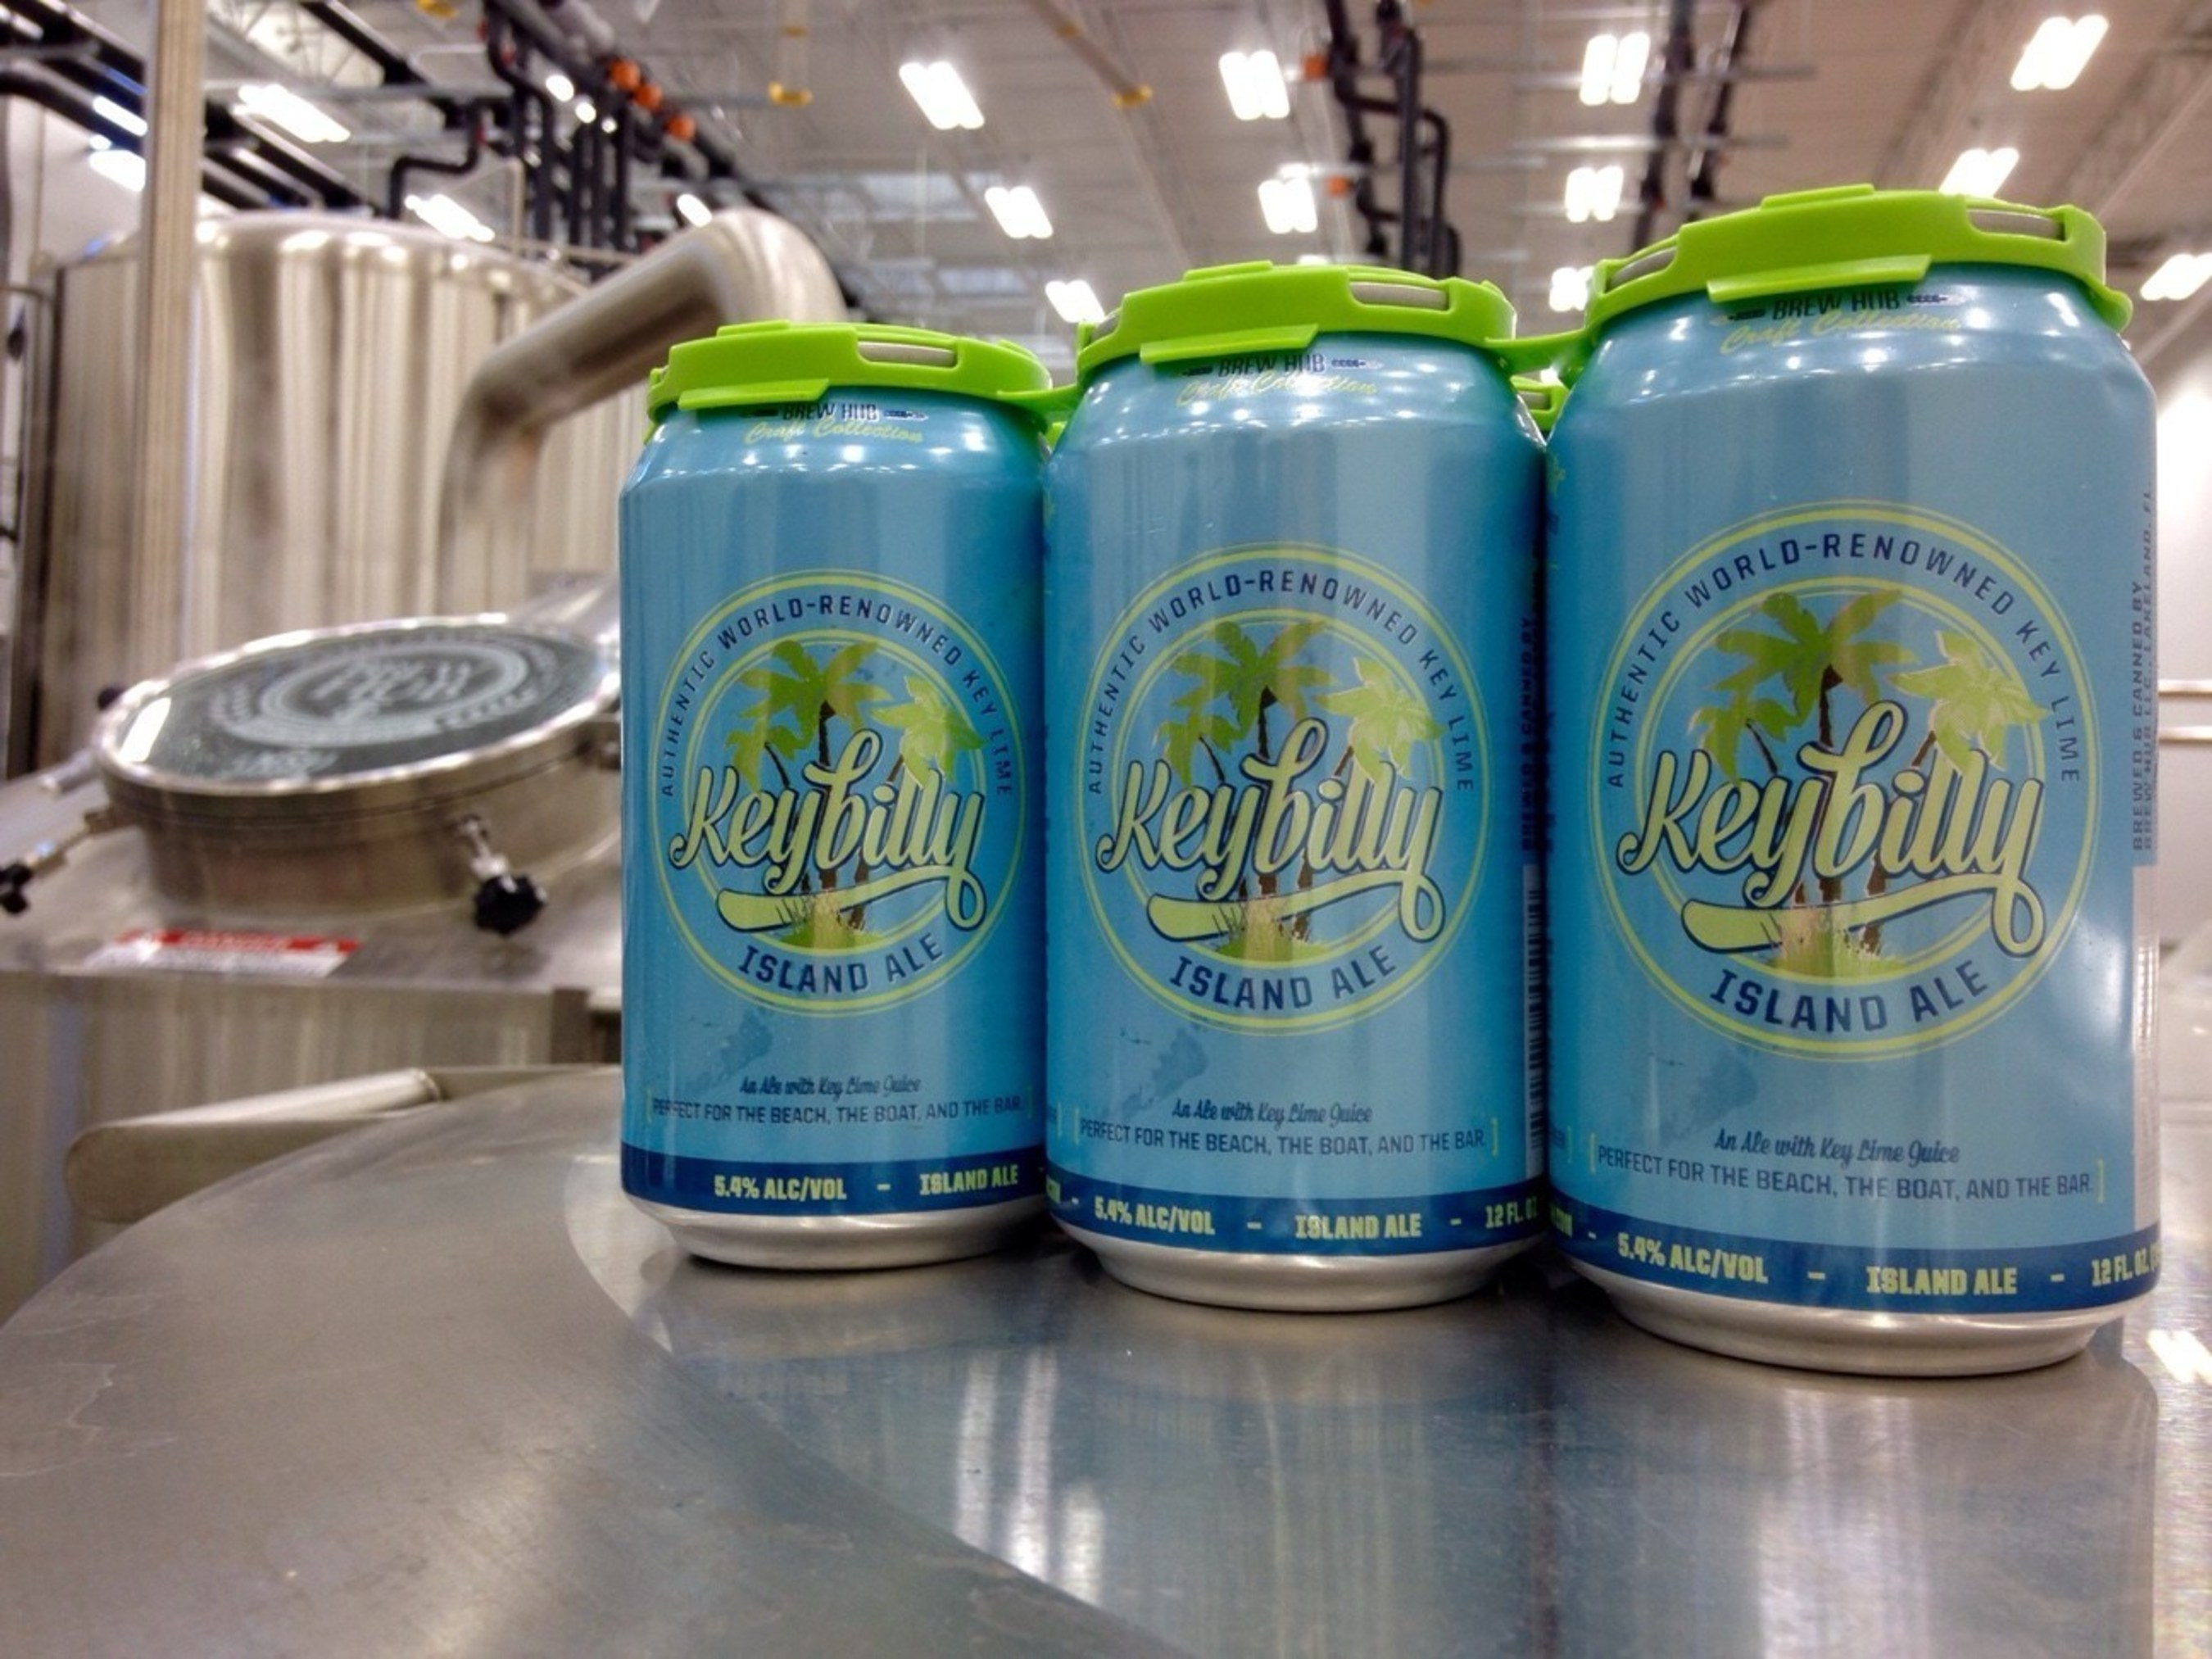 Six-pack of Keybilly Island Ale at Brew Hub in Lakeland, Florida.